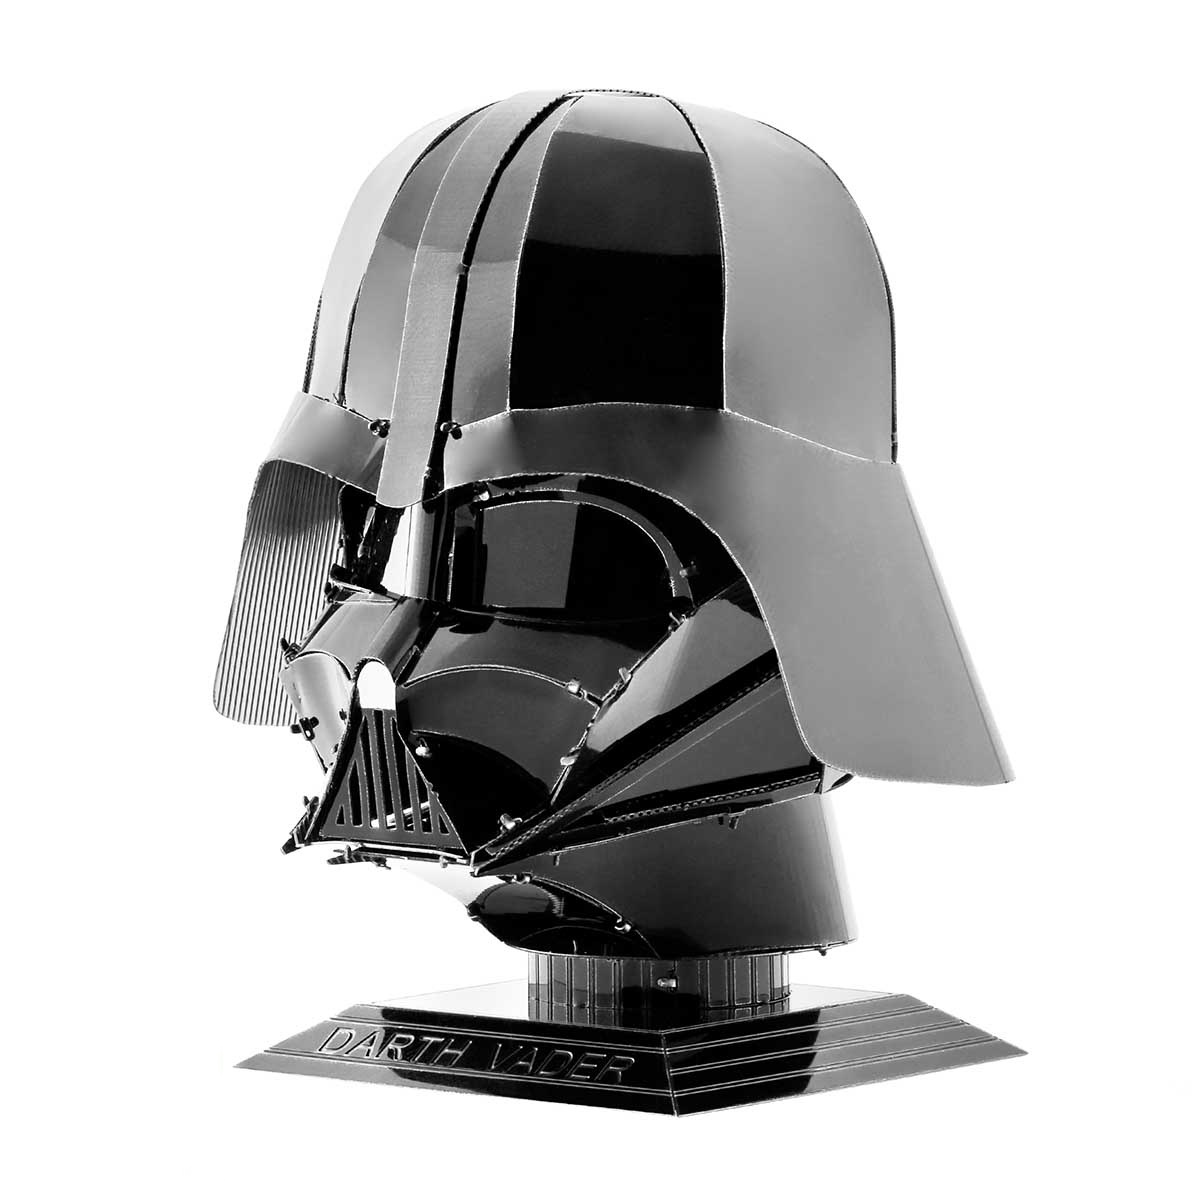 Darth Vader Helmet Movies / Books / TV Metal Puzzles